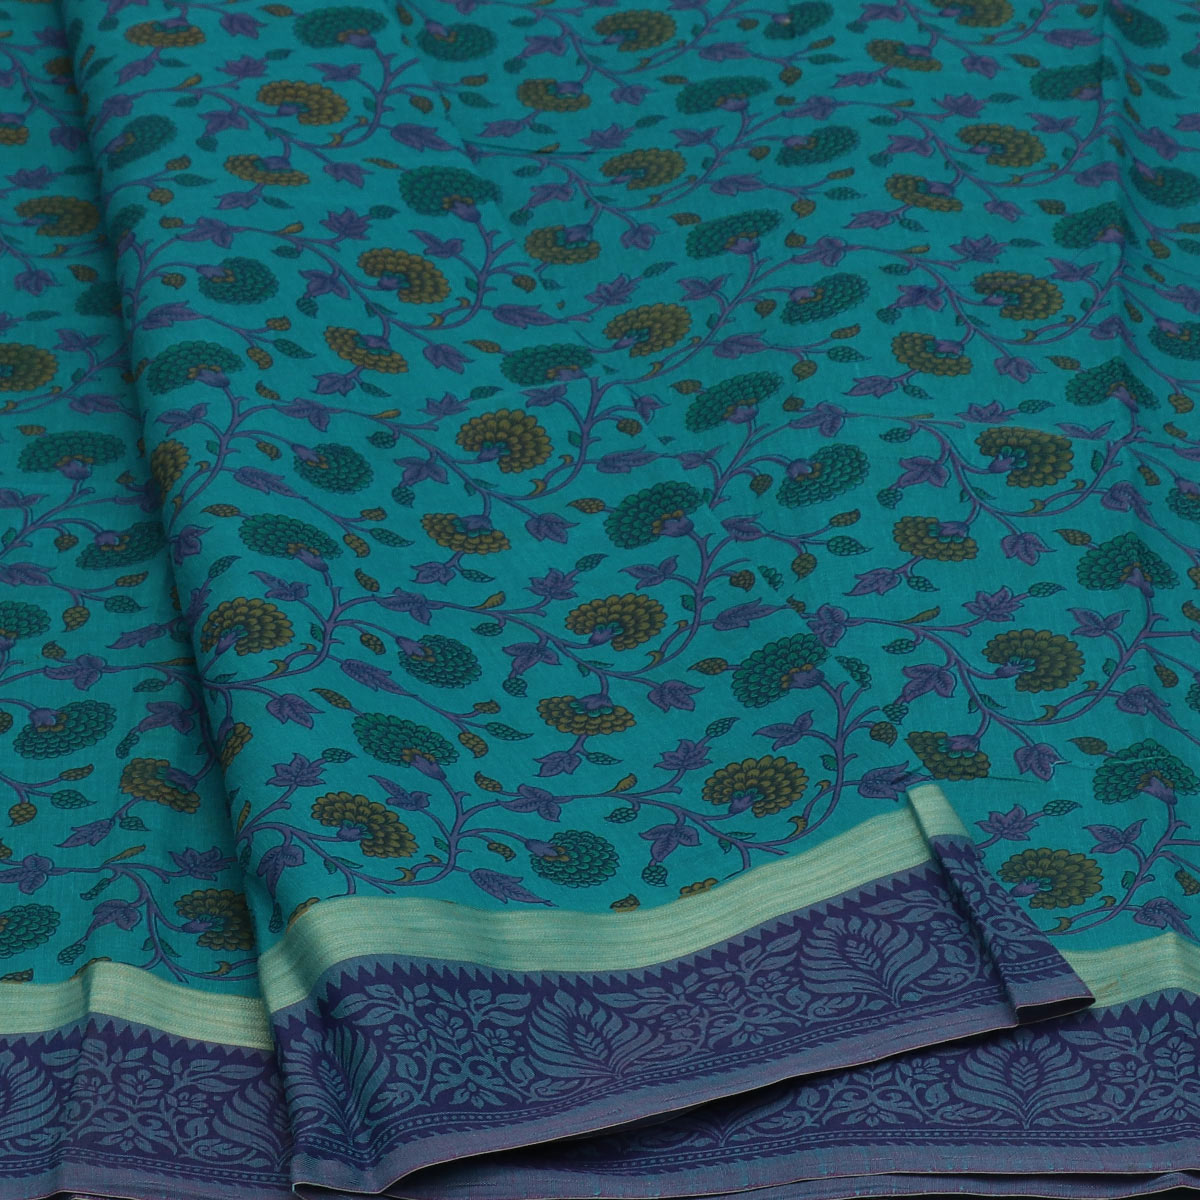 Chanderi Cotton Saree Sky Blue with Simple border for Rs.Rs. 990.00 | Cotton Sarees by Prashanti Sarees